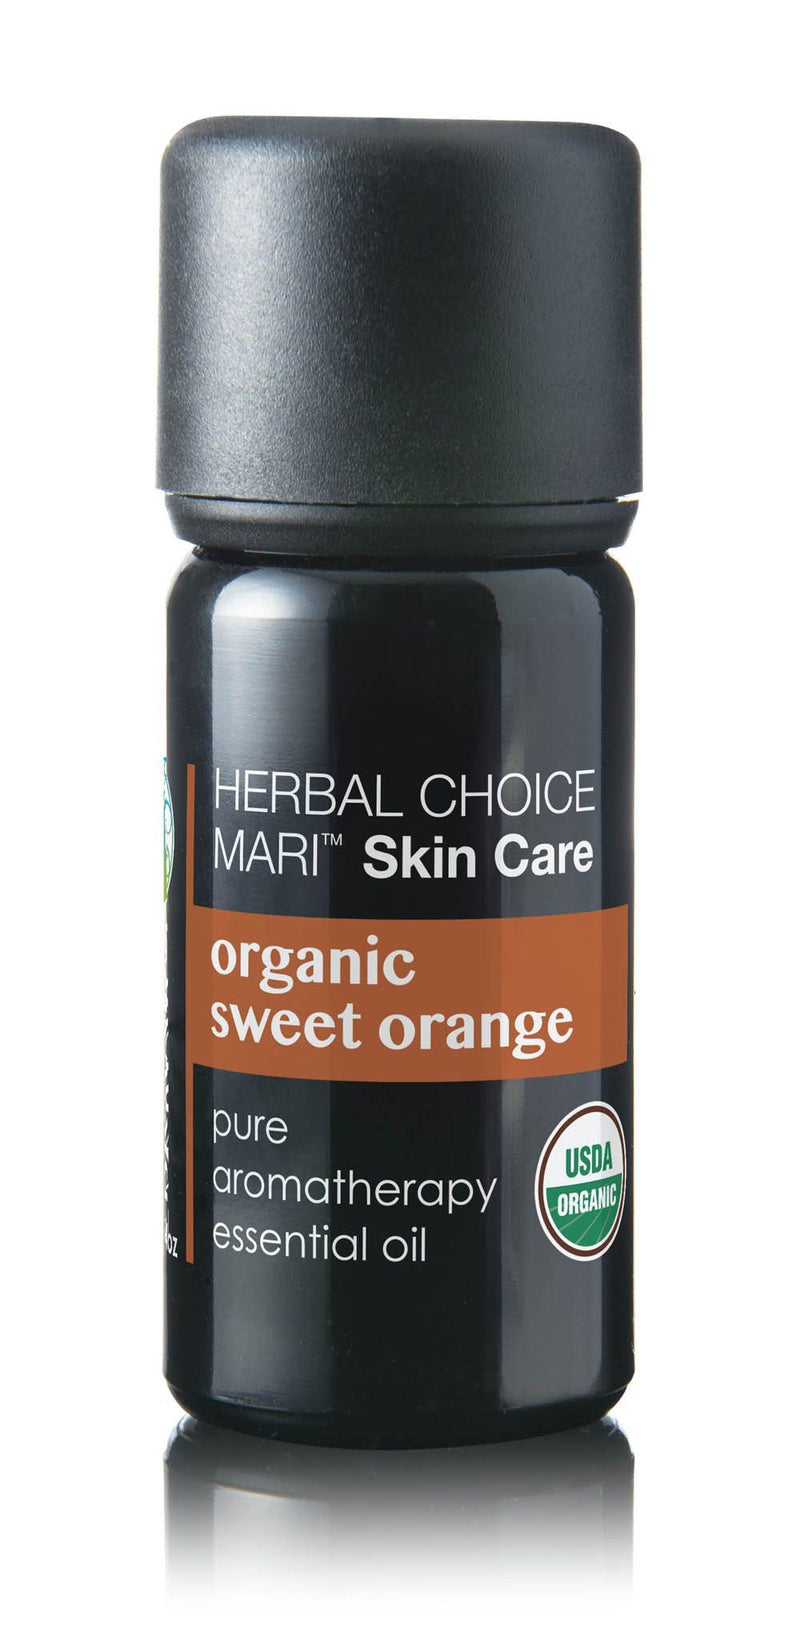 Herbal Choice Mari Organic Sweet Orange Essential Oil; 0.3floz Glass - Herbal Choice Mari Organic Sweet Orange Essential Oil; 0.3floz Glass - Herbal Choice Mari Organic Sweet Orange Essential Oil; 0.3floz Glass